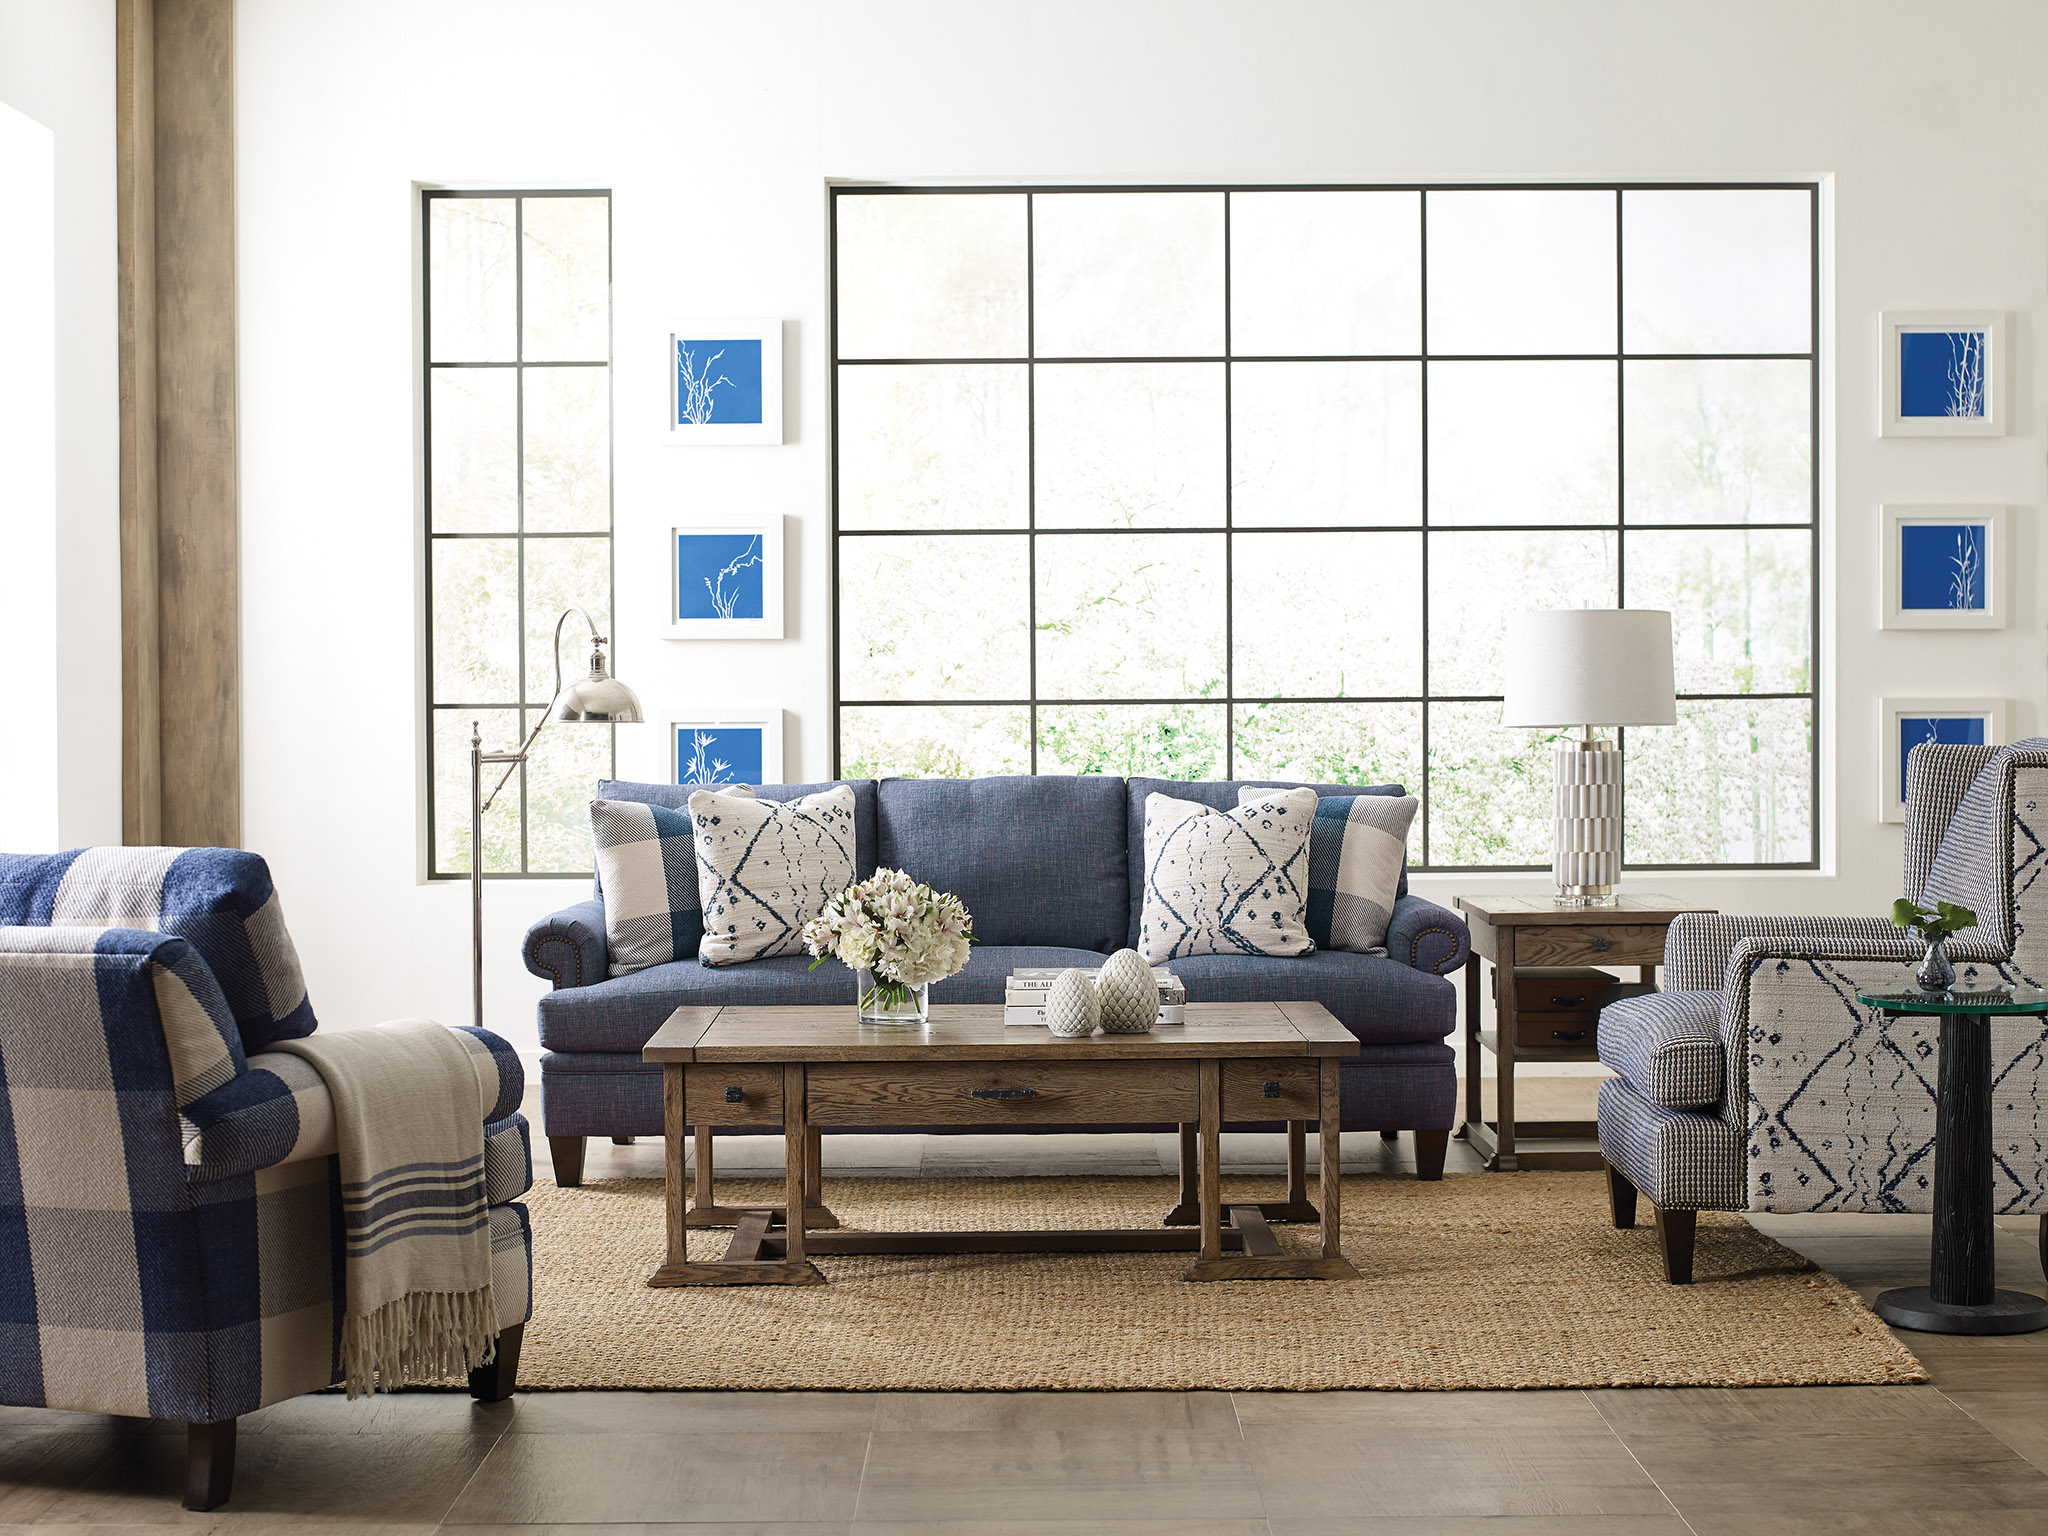 How To Use Accent Chairs E F Brannon, Living Room Accent